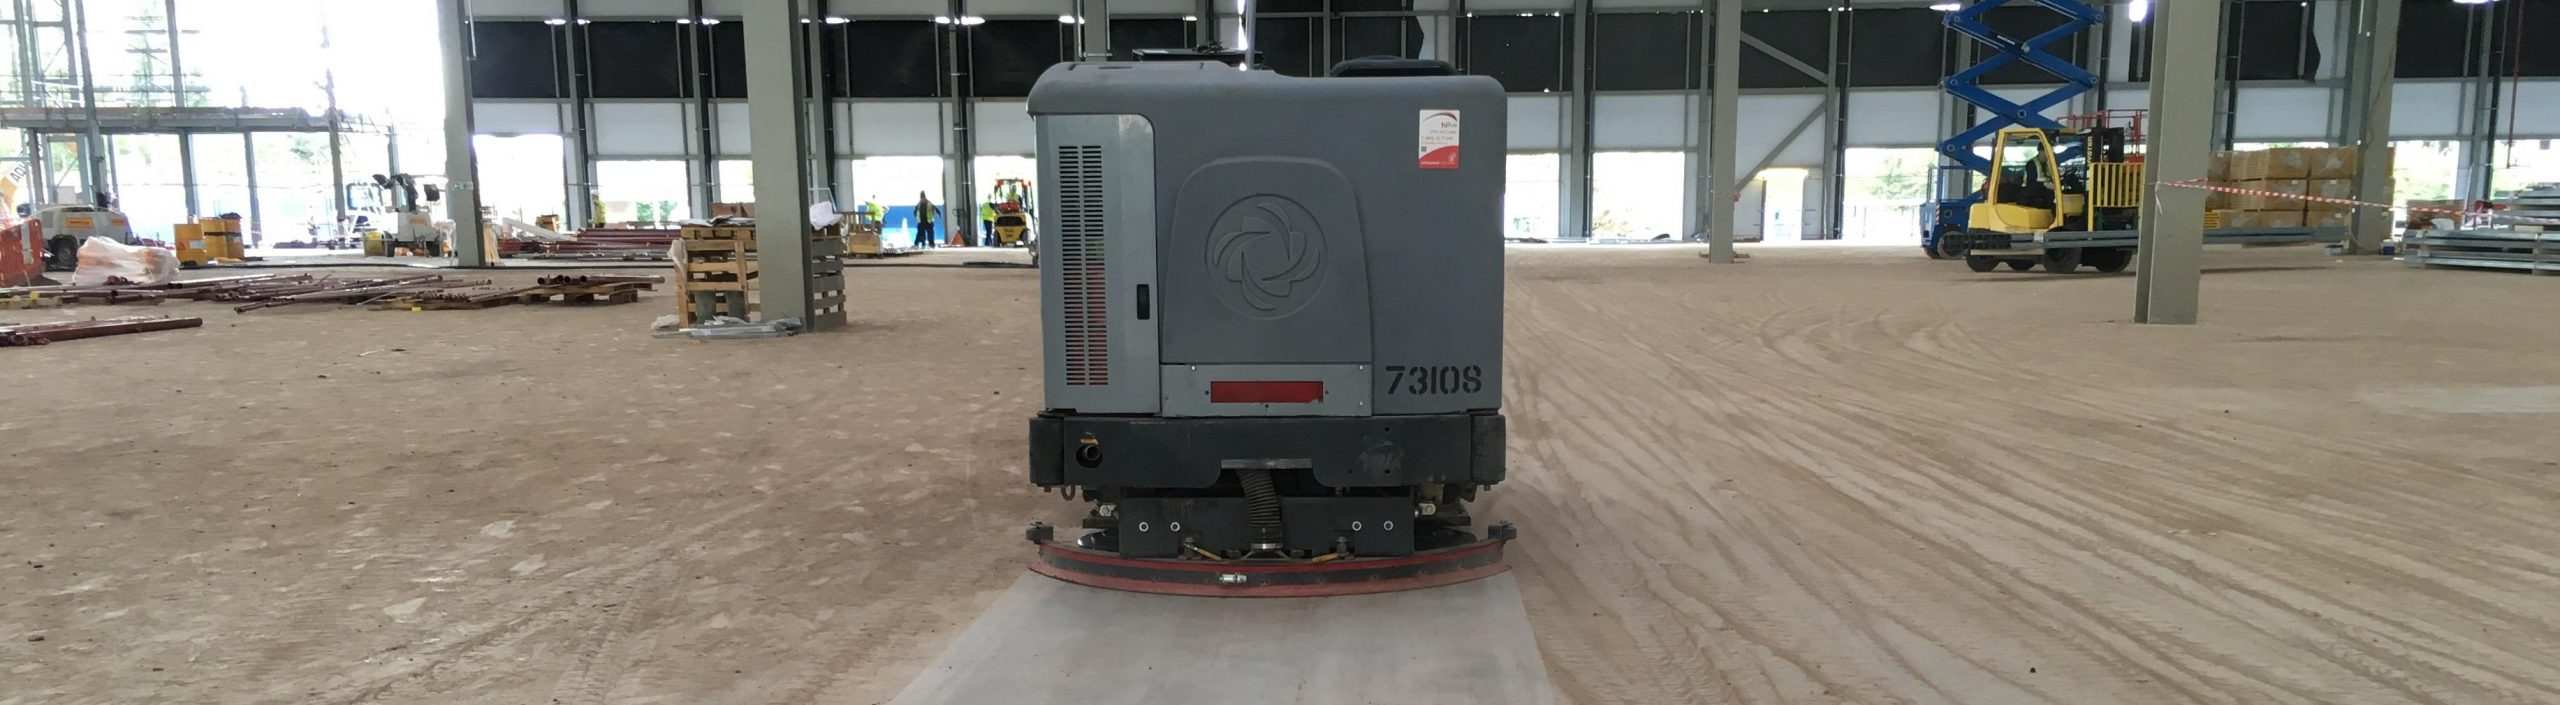 compact cleaning machines scrubber drier carpet numatic images and electric floor photo